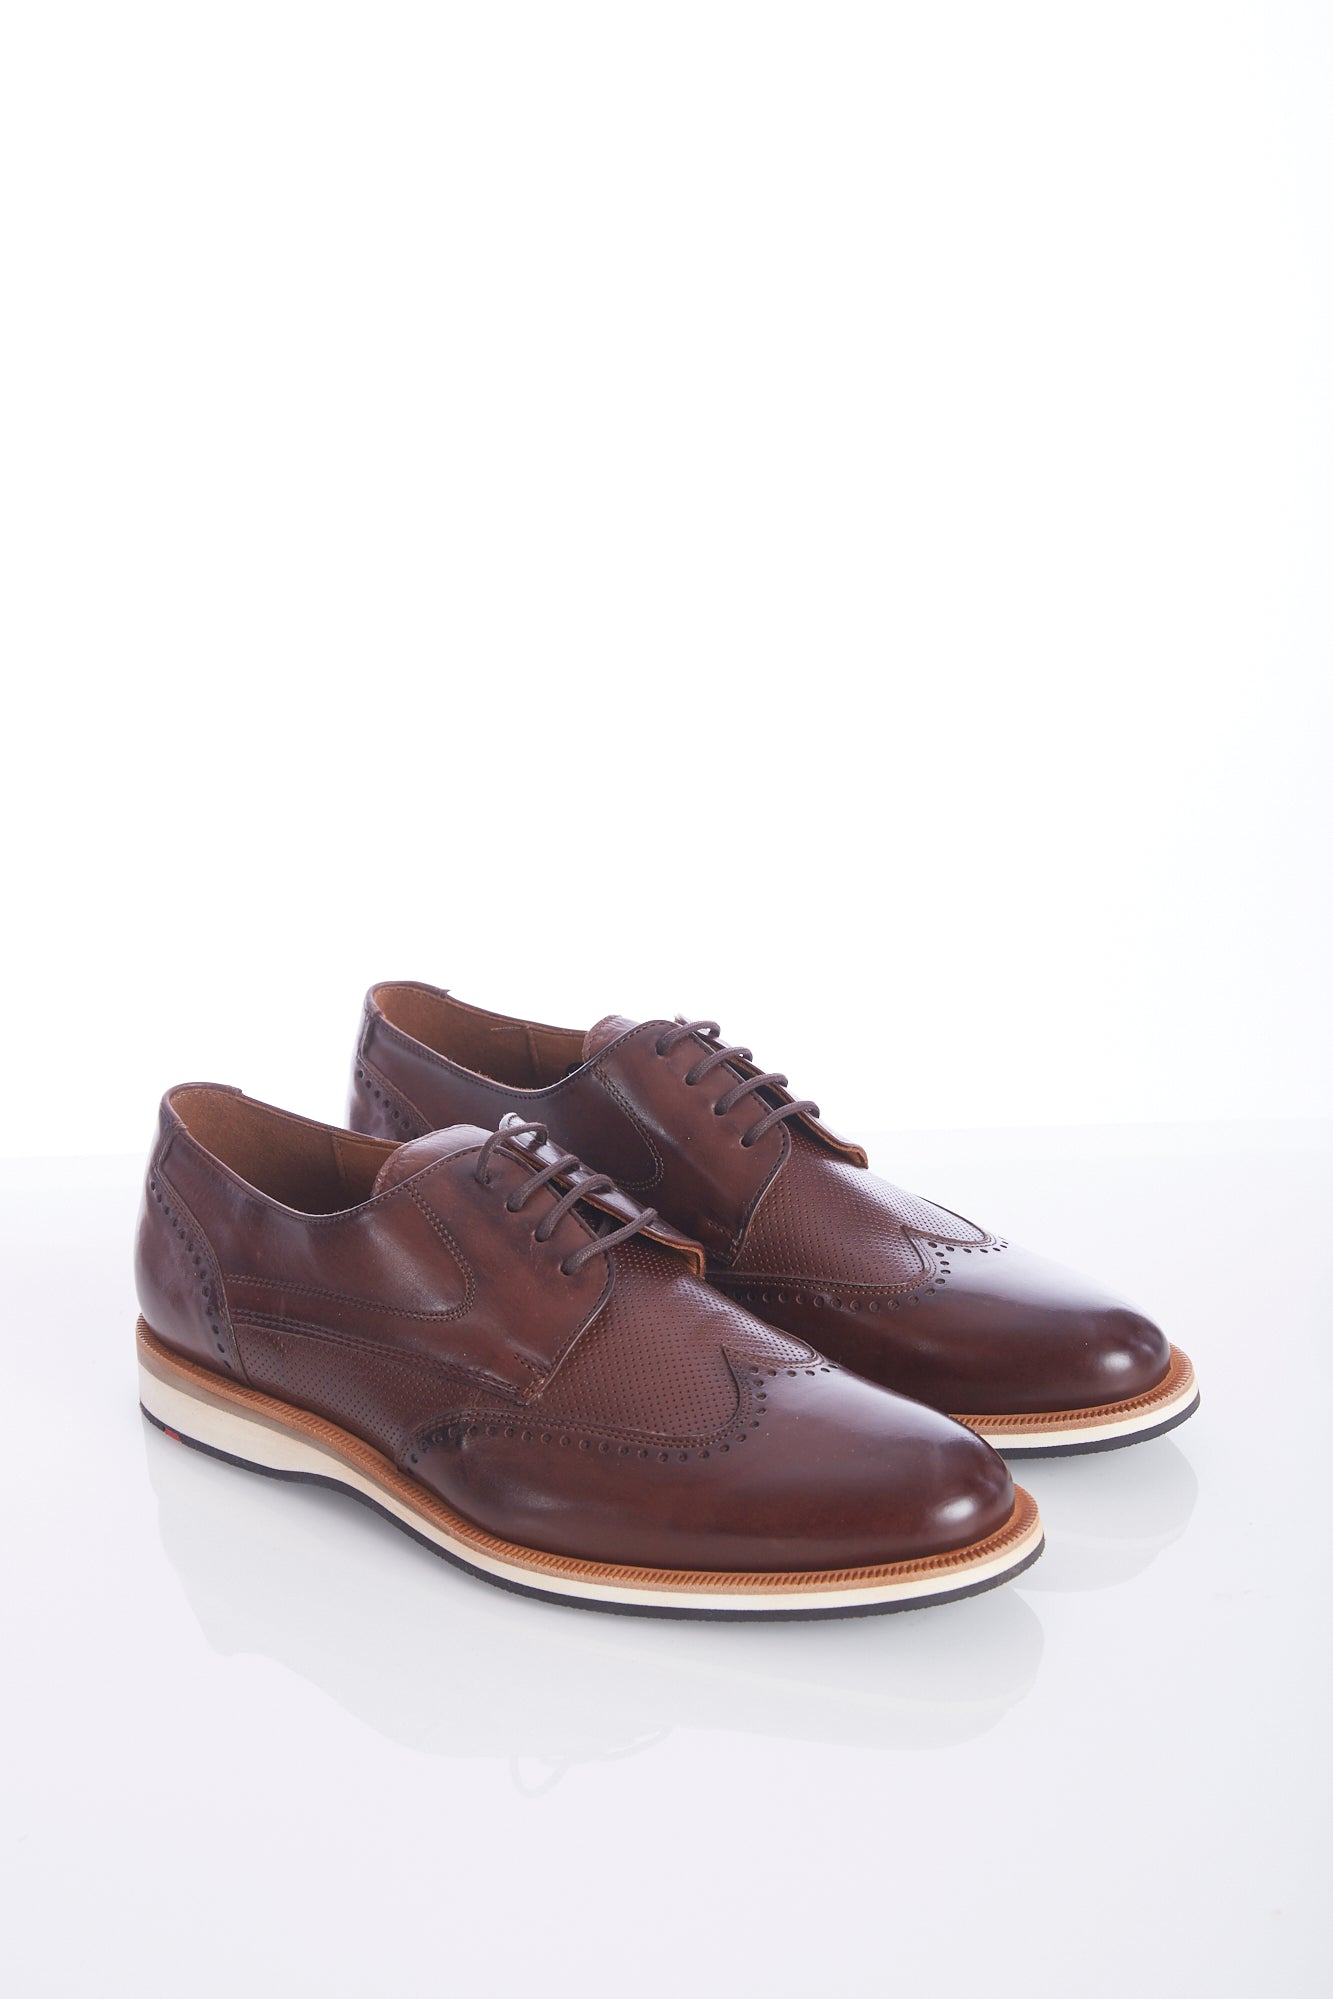 Lloyd 'Odil' Chestnut Brown Wingtip Shoes